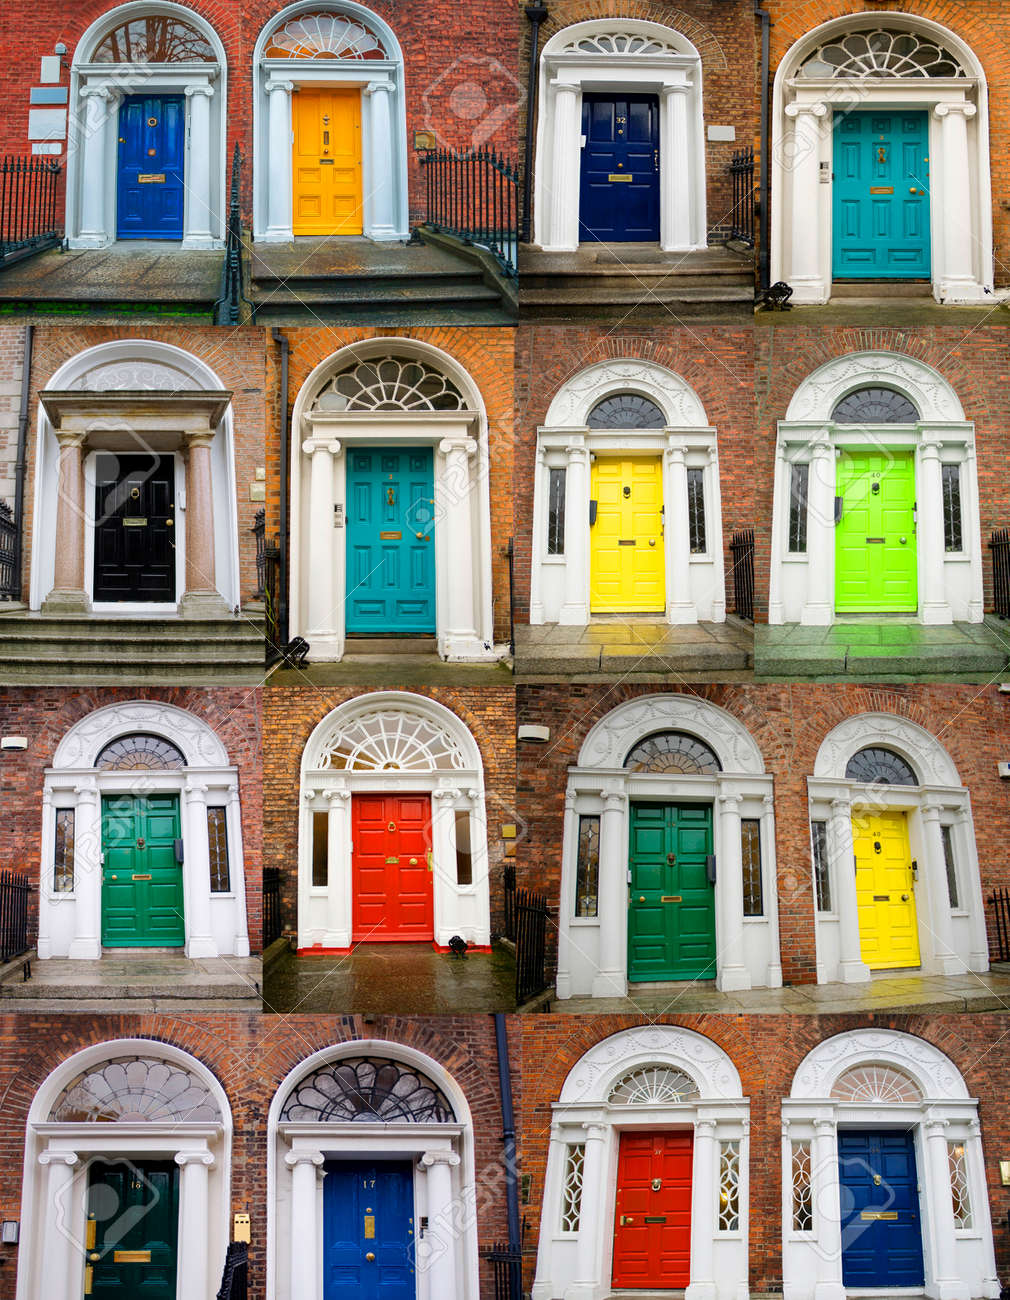 A Photo Collage Of 16 Colourful Front Doors To Houses And Homes ...